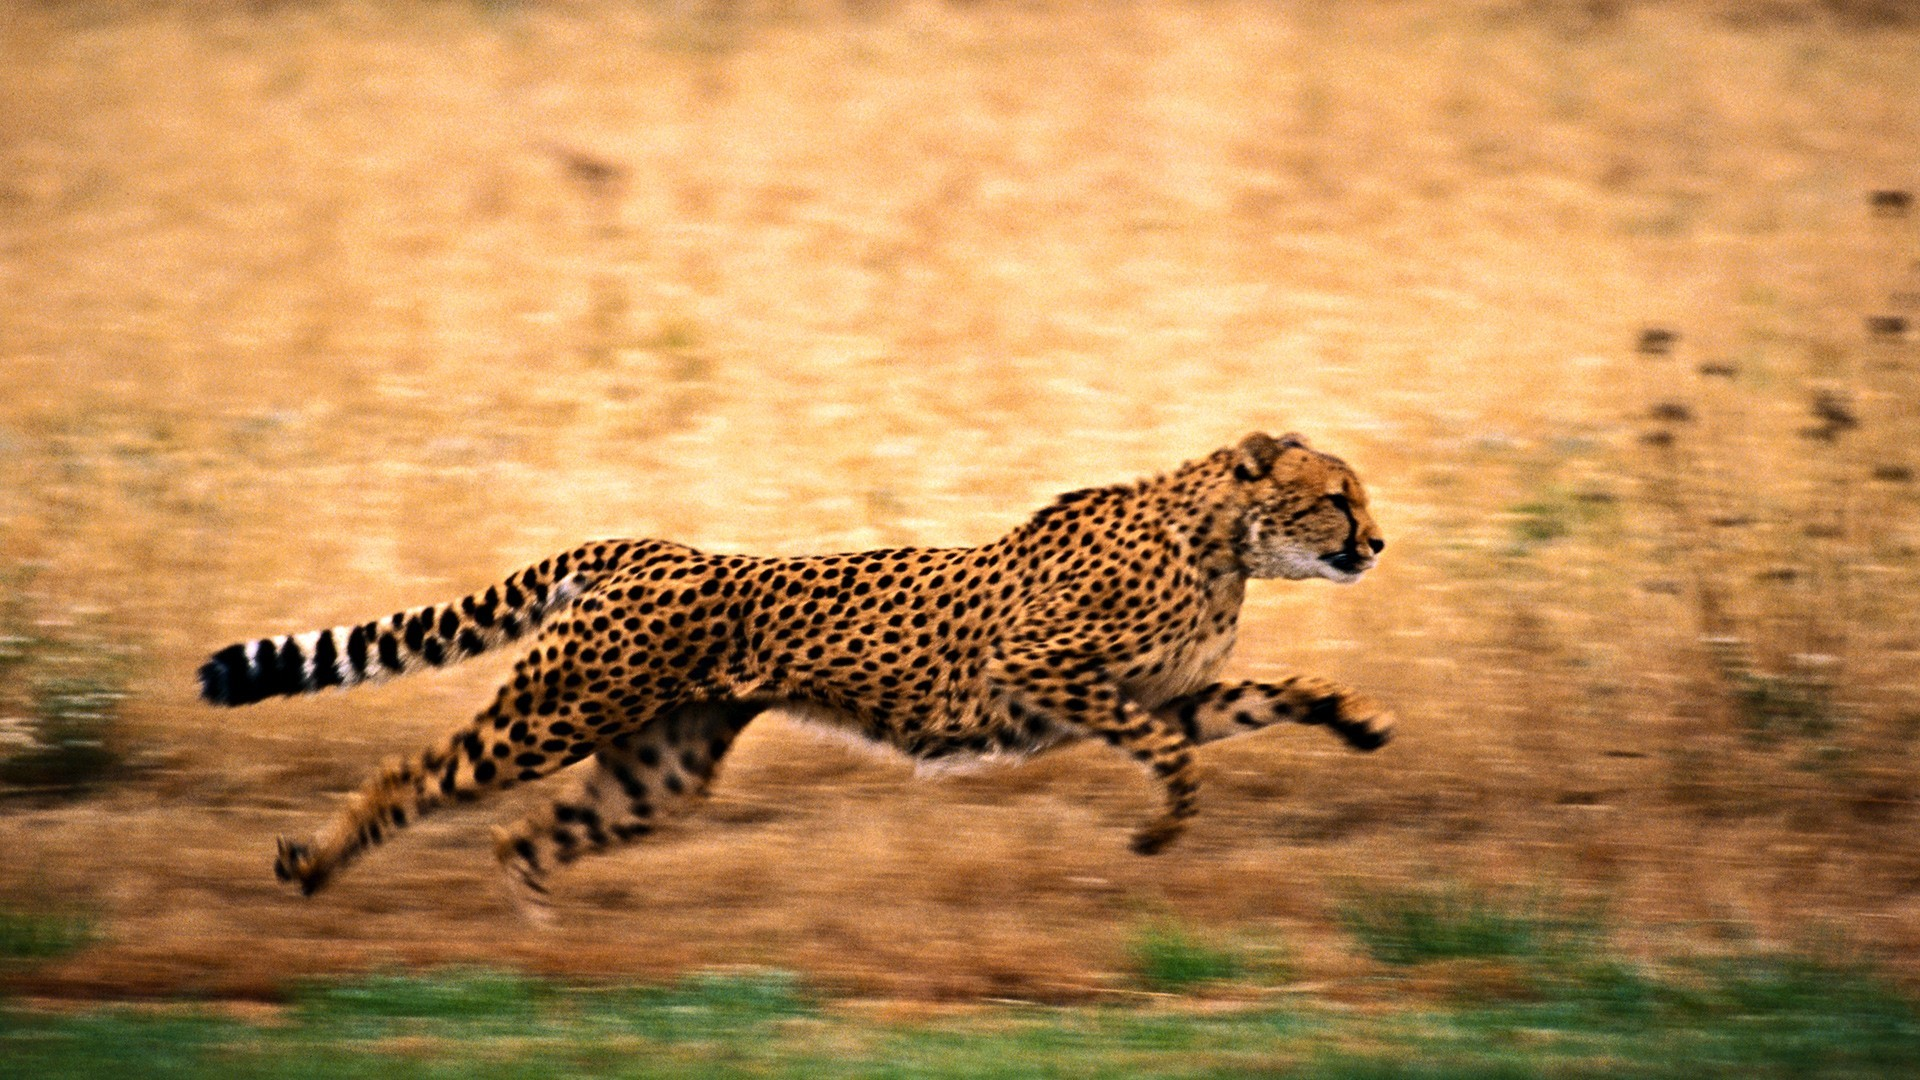 Res: 1920x1080, Free Download Cheetah in High Definition quality wallpapers for Desktop and  Mobiles in HD, Wide, 4K and 5K resolutions.